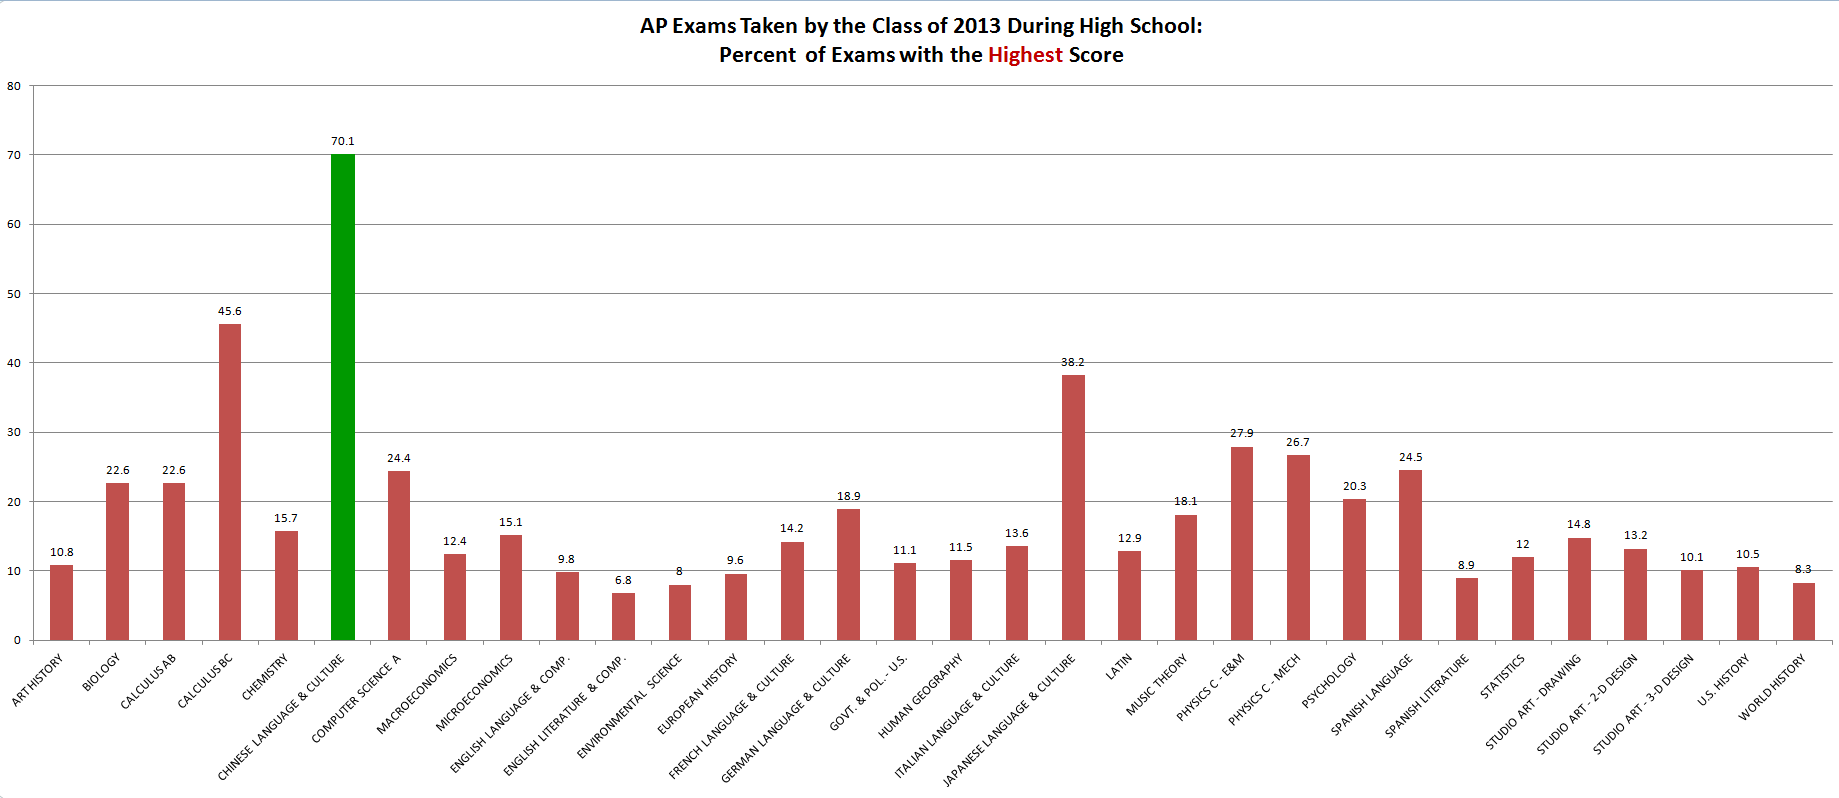 Advanced Placement exams, showing the percentages earning the top score on different AP tests